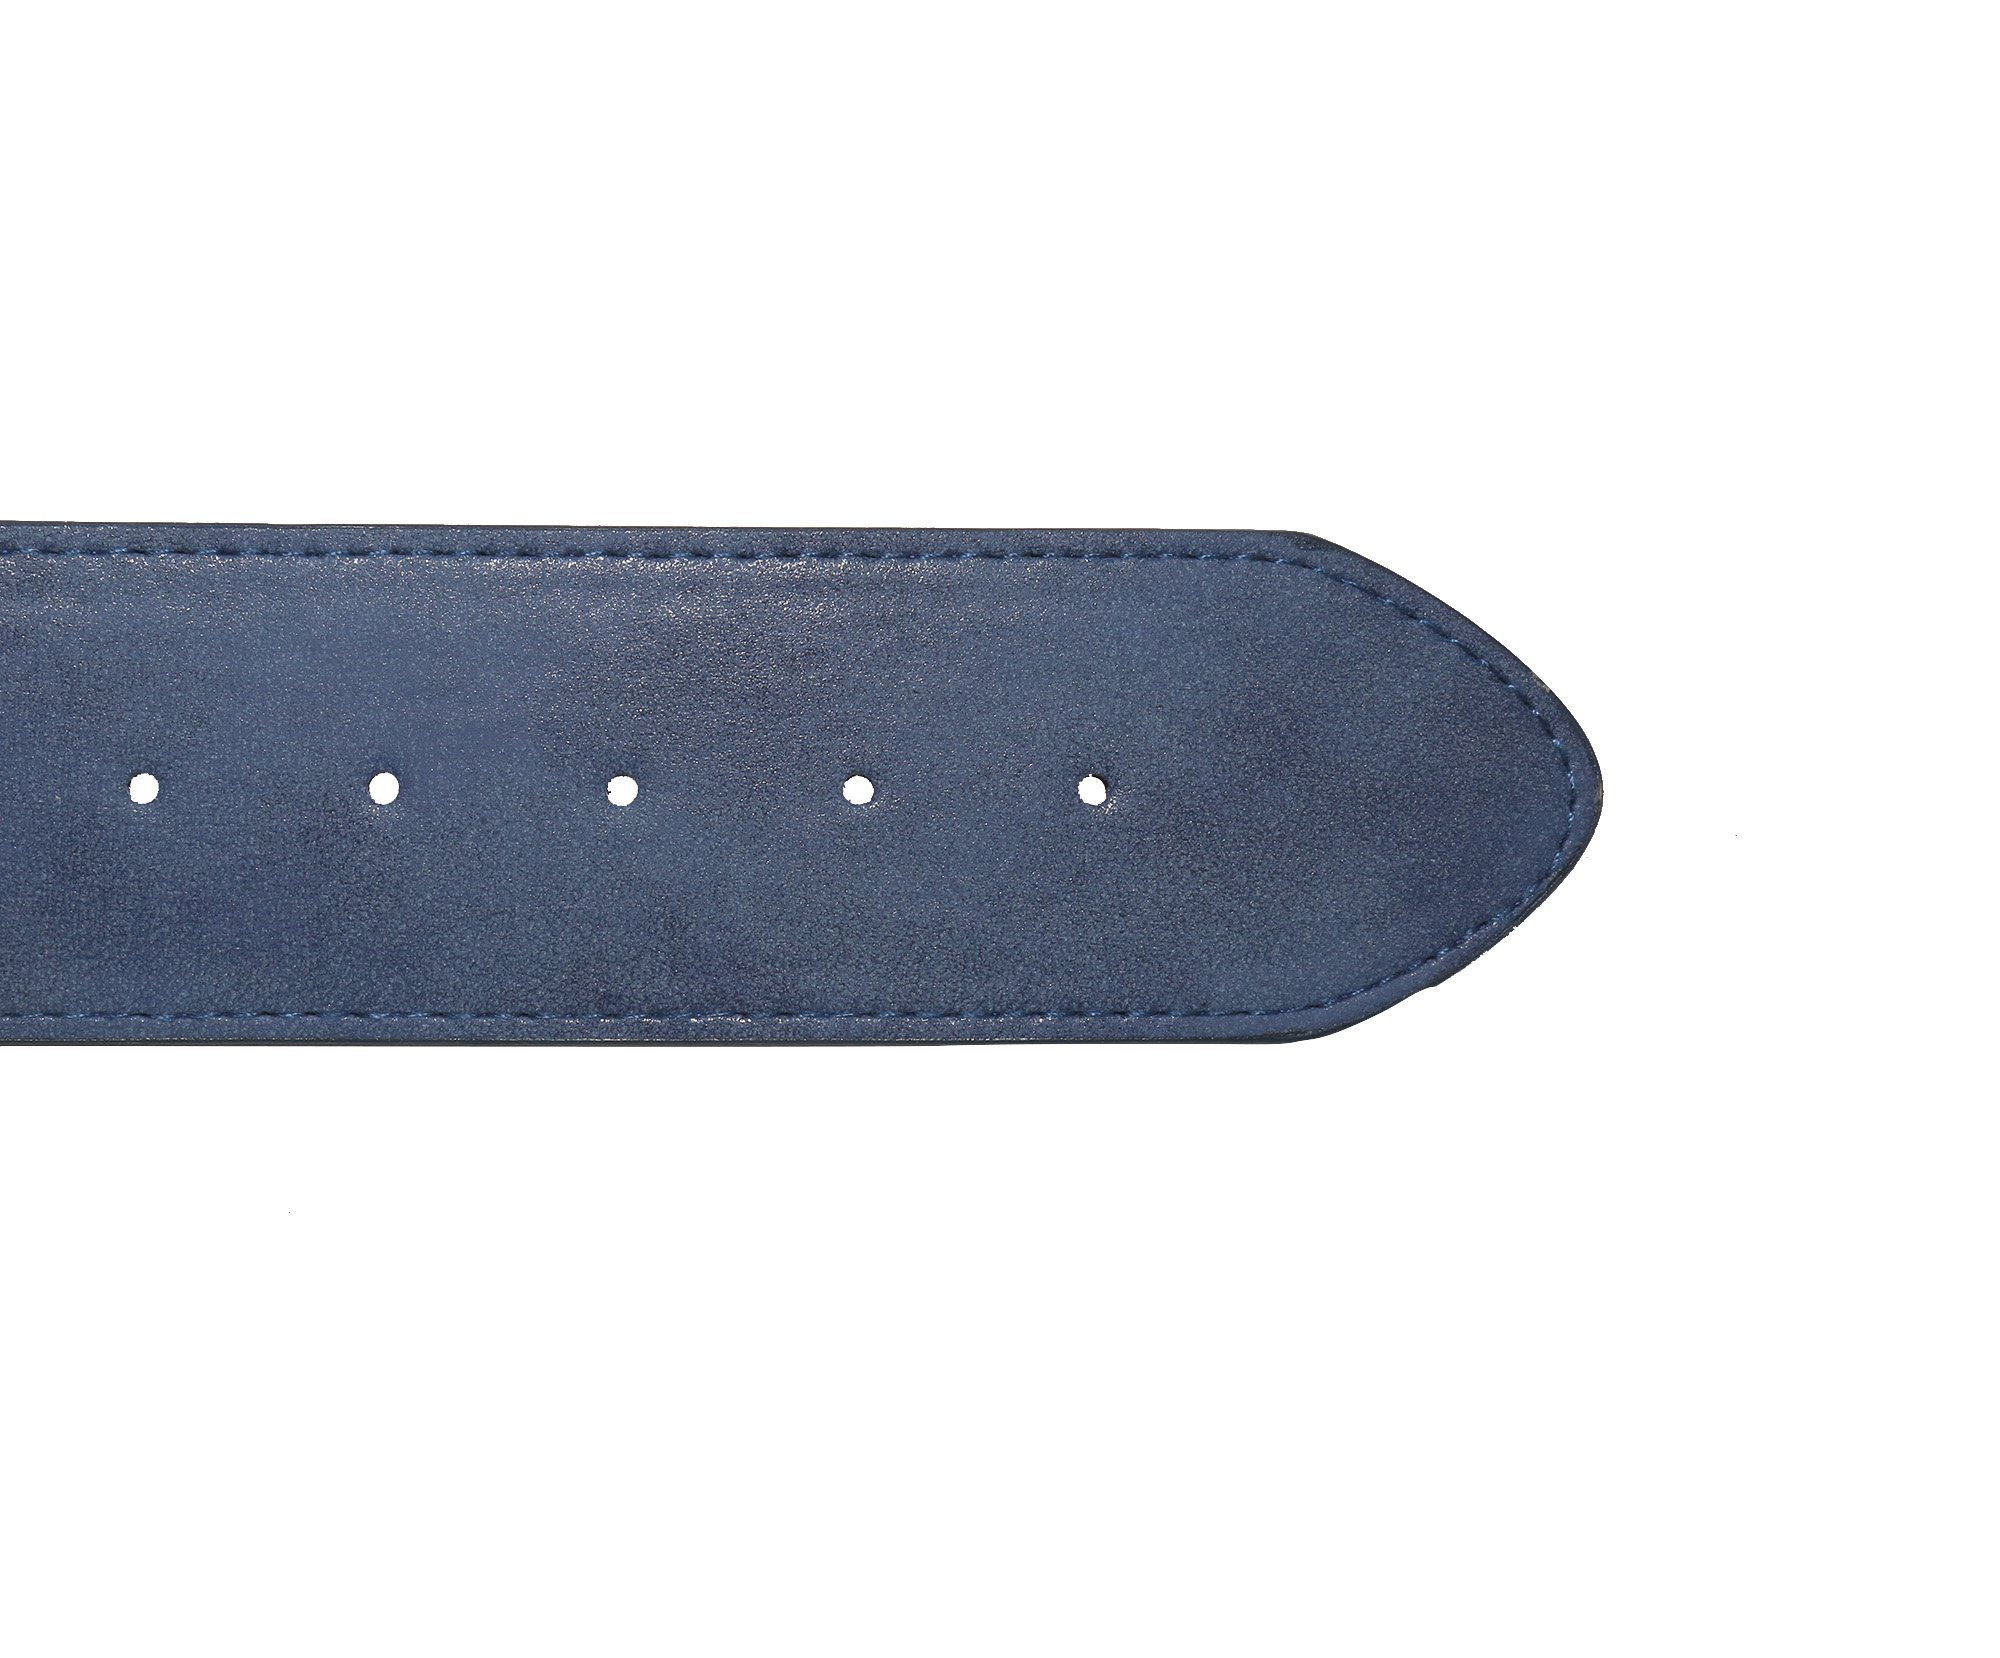 Modeway Women 2'' Wide Suede Leather Silver Square Buckle Adjustable Waist Belts (S-M, Navy-4#) by Modeway (Image #5)